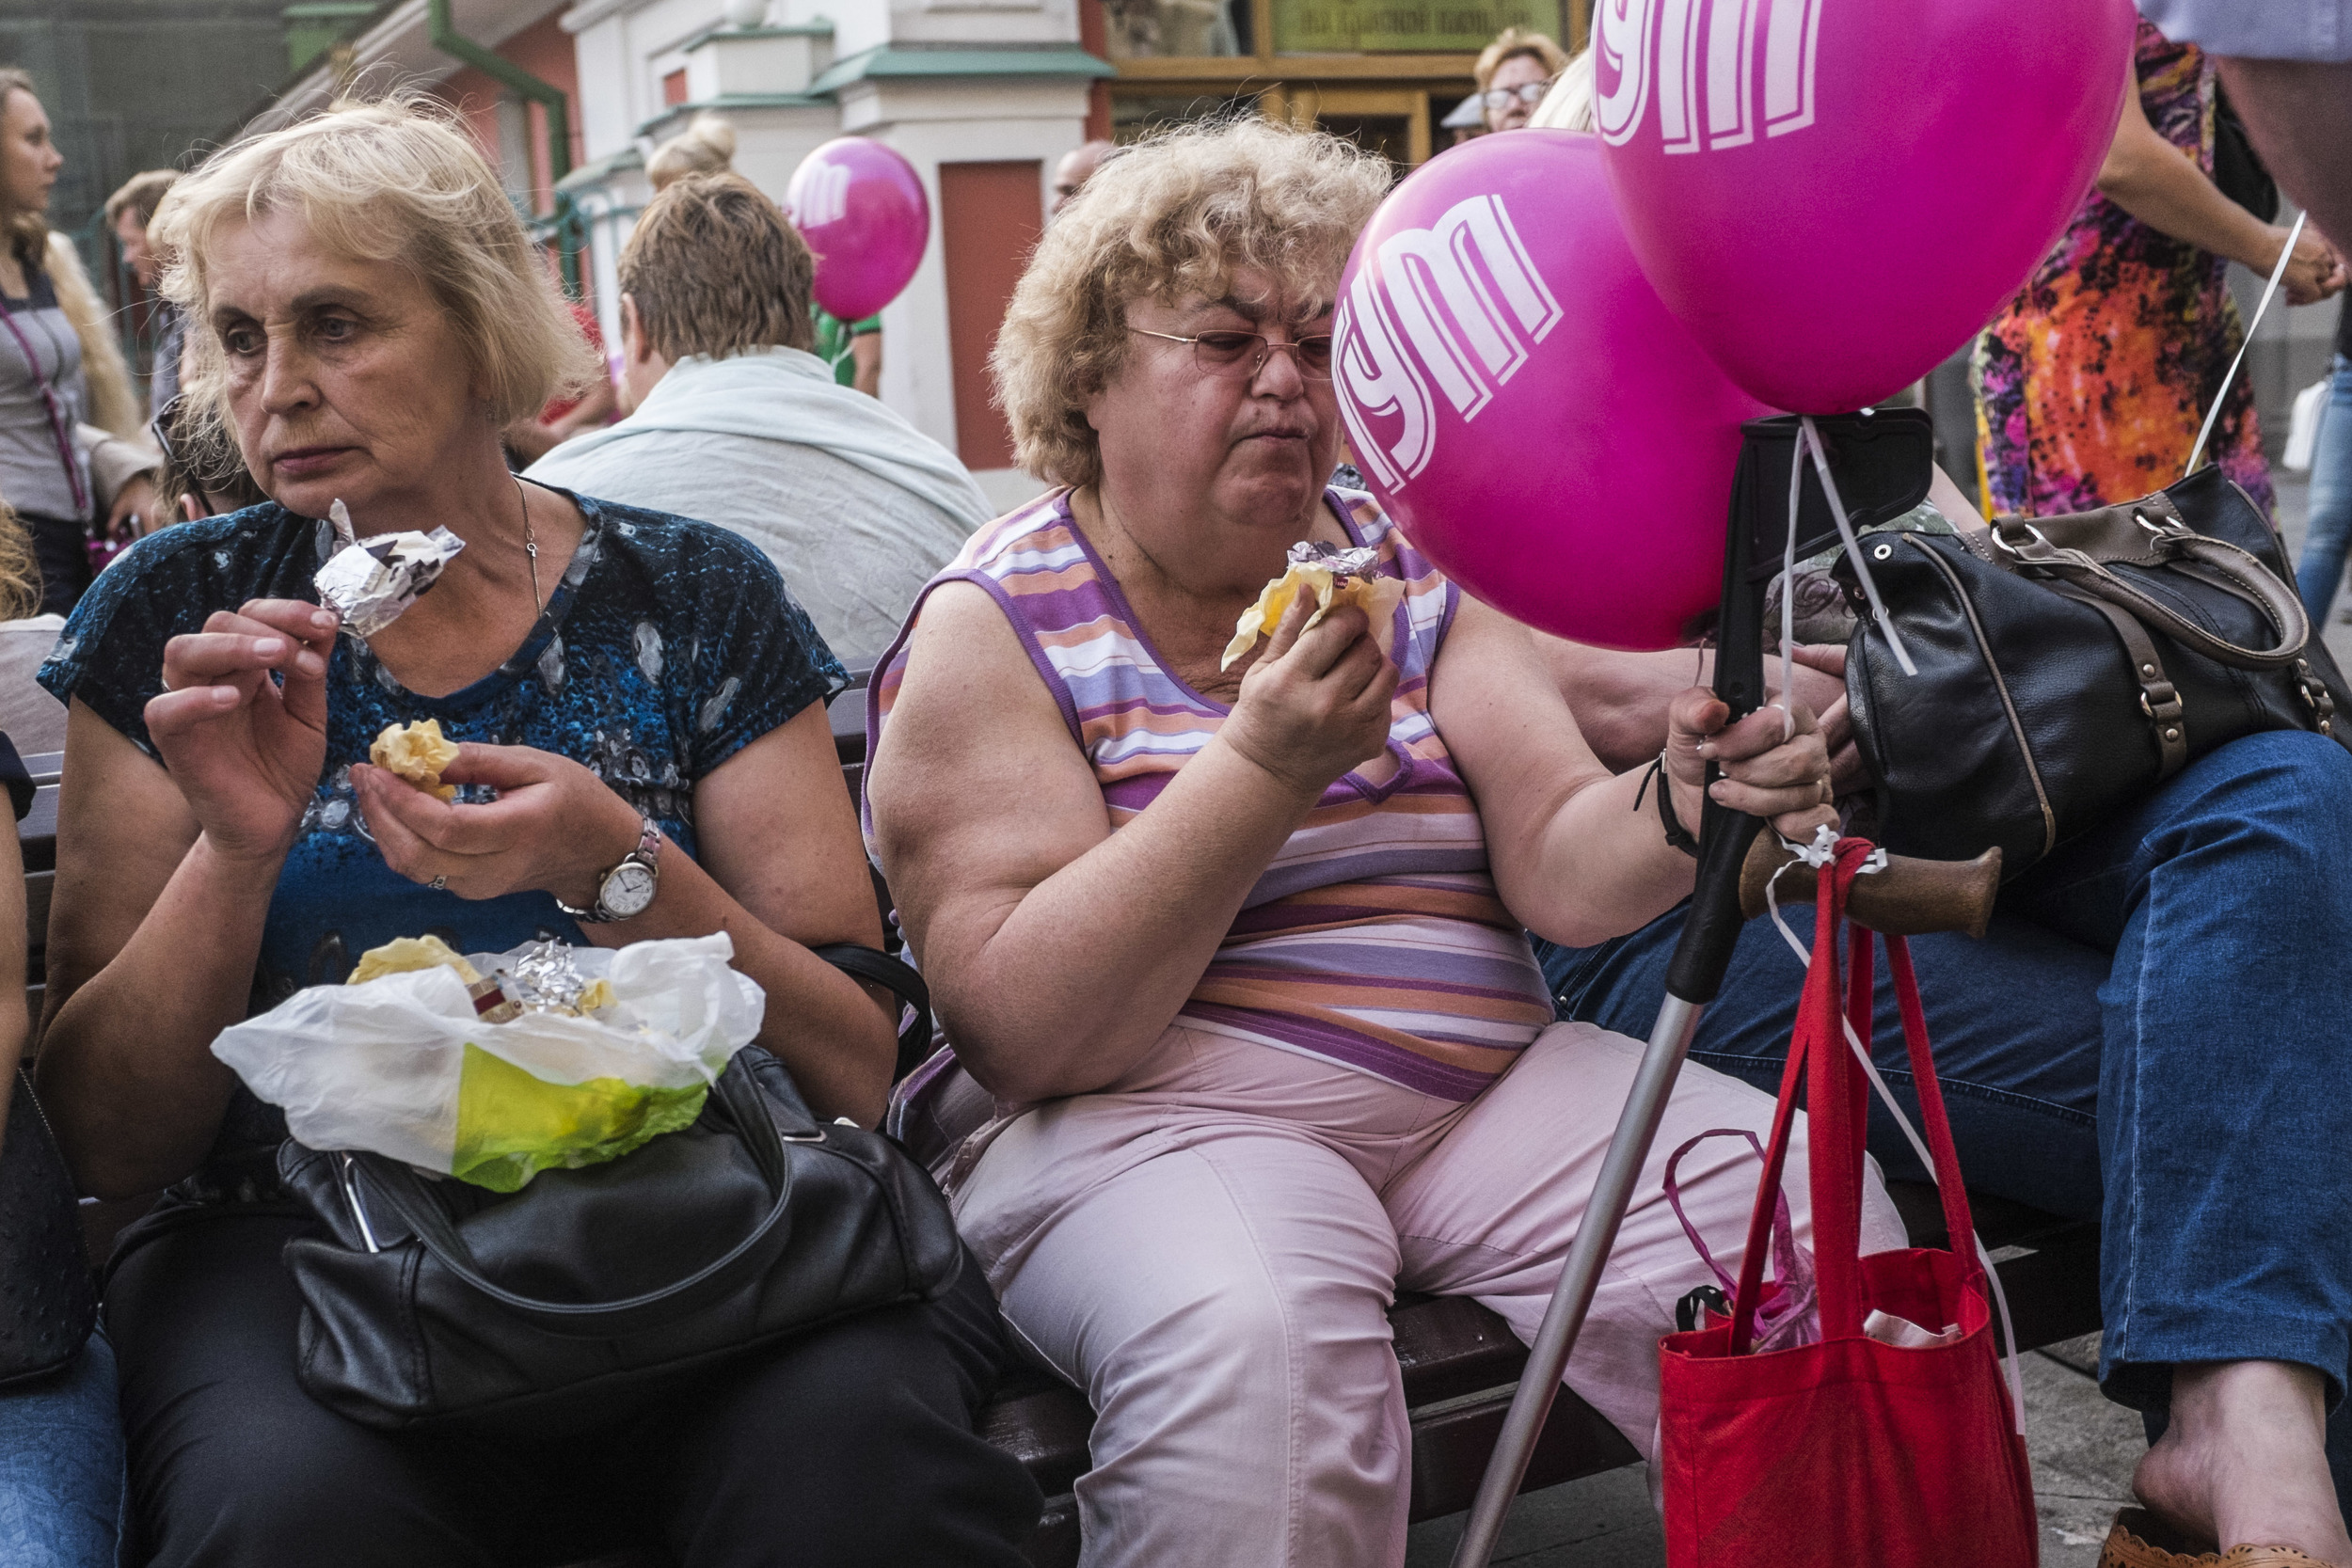 Free ice cream festival at Moscow's GUM department store. July 9, 2015